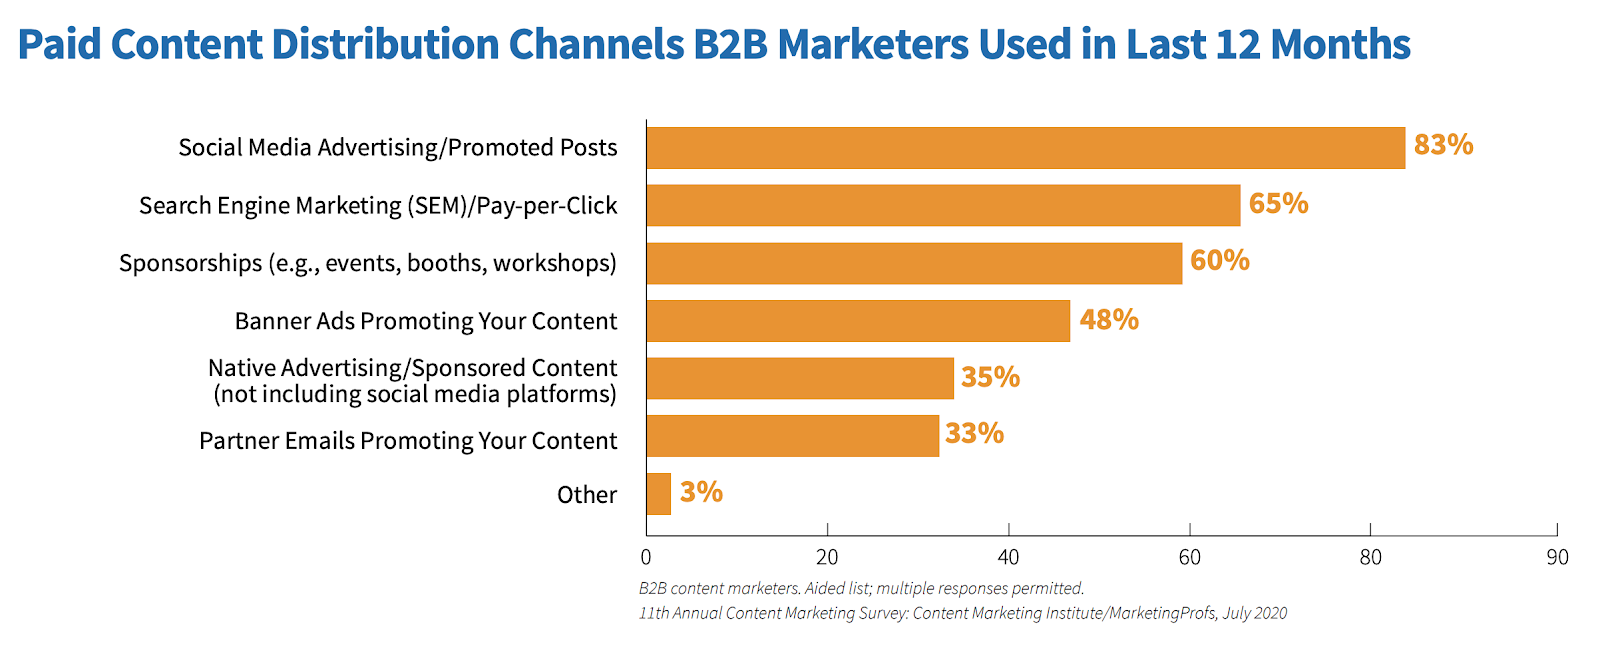 Paid content distribution channels B2B marketers used in Last 12 months